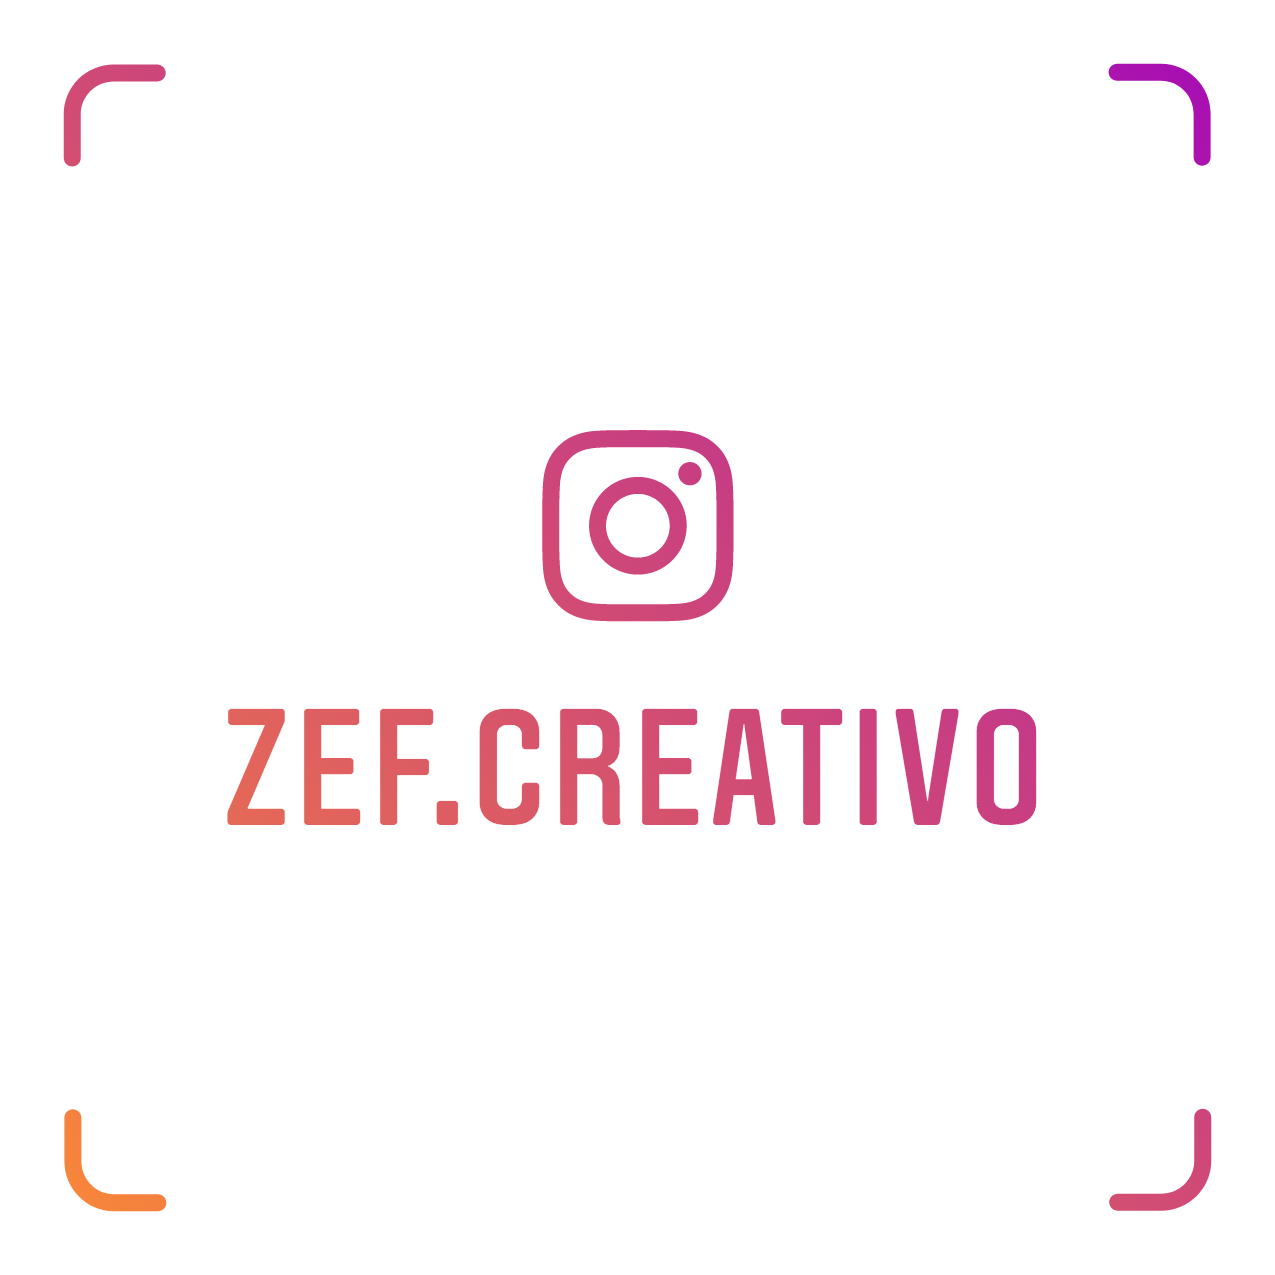 zef.creativo_nametag